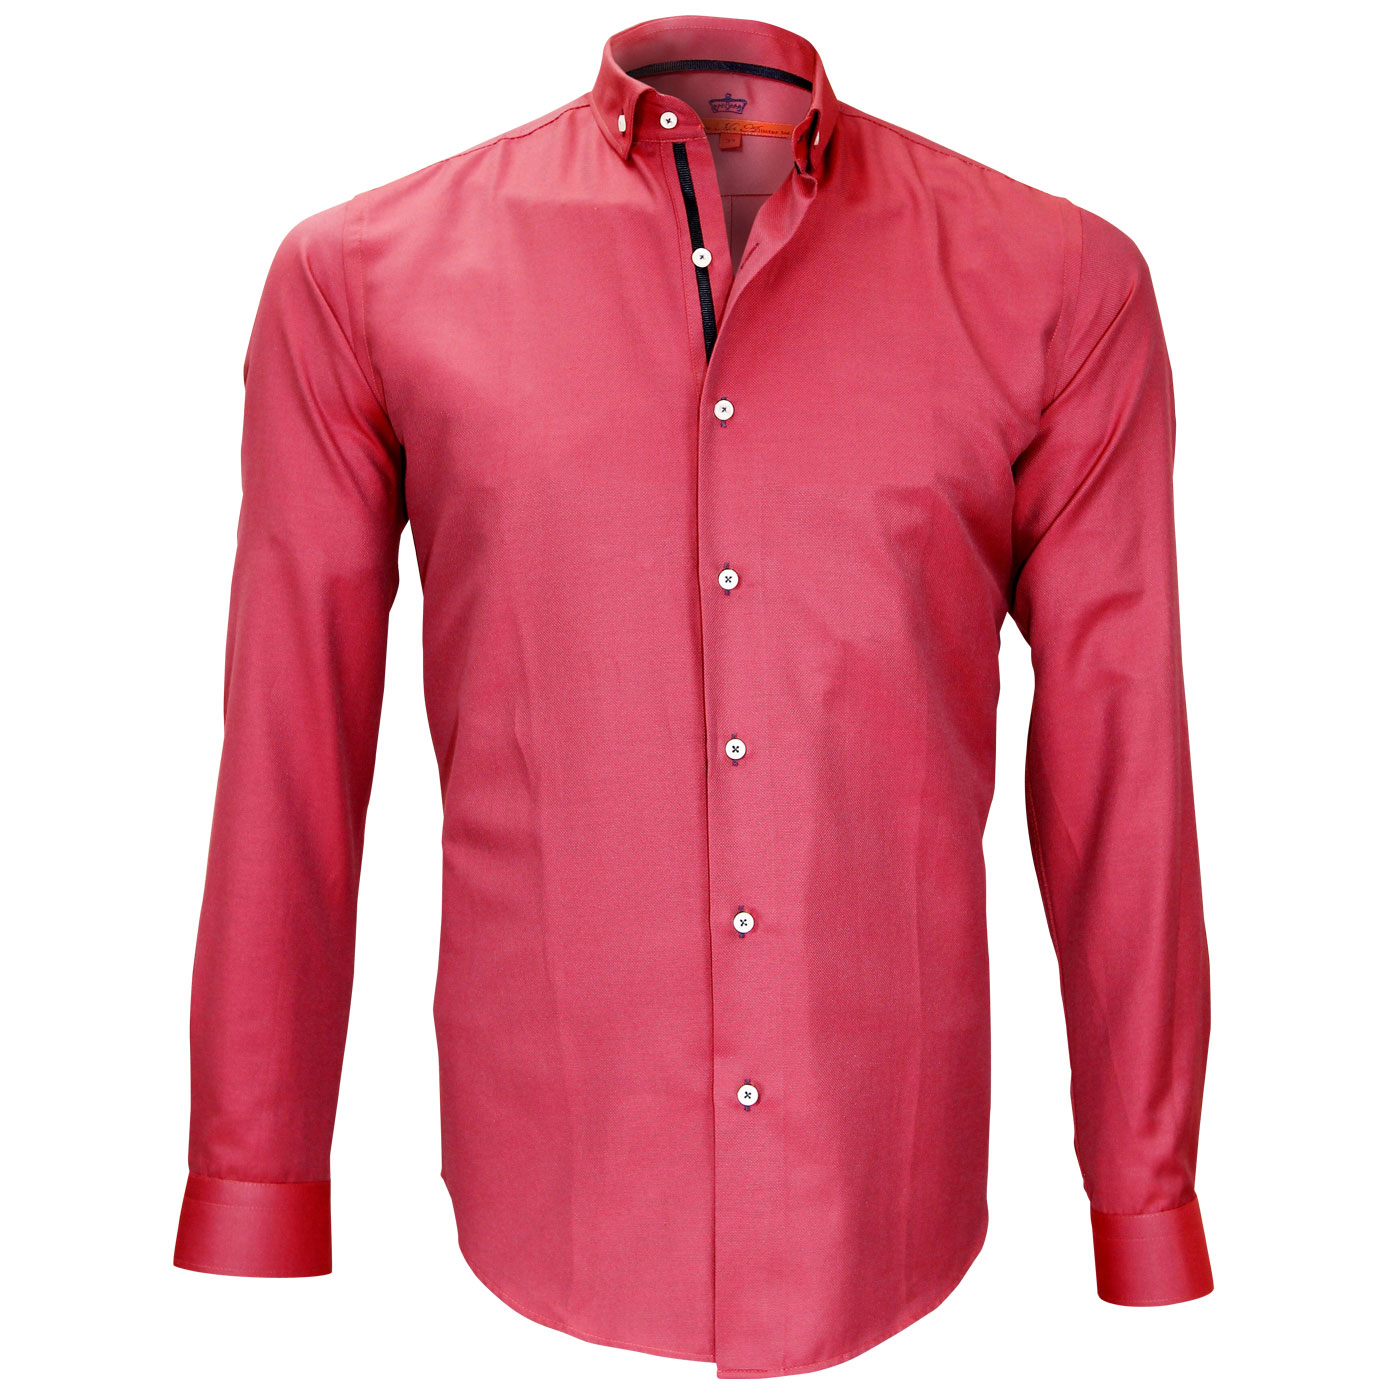 Sales of men's red shirt, shirts for men: Webmenshirts